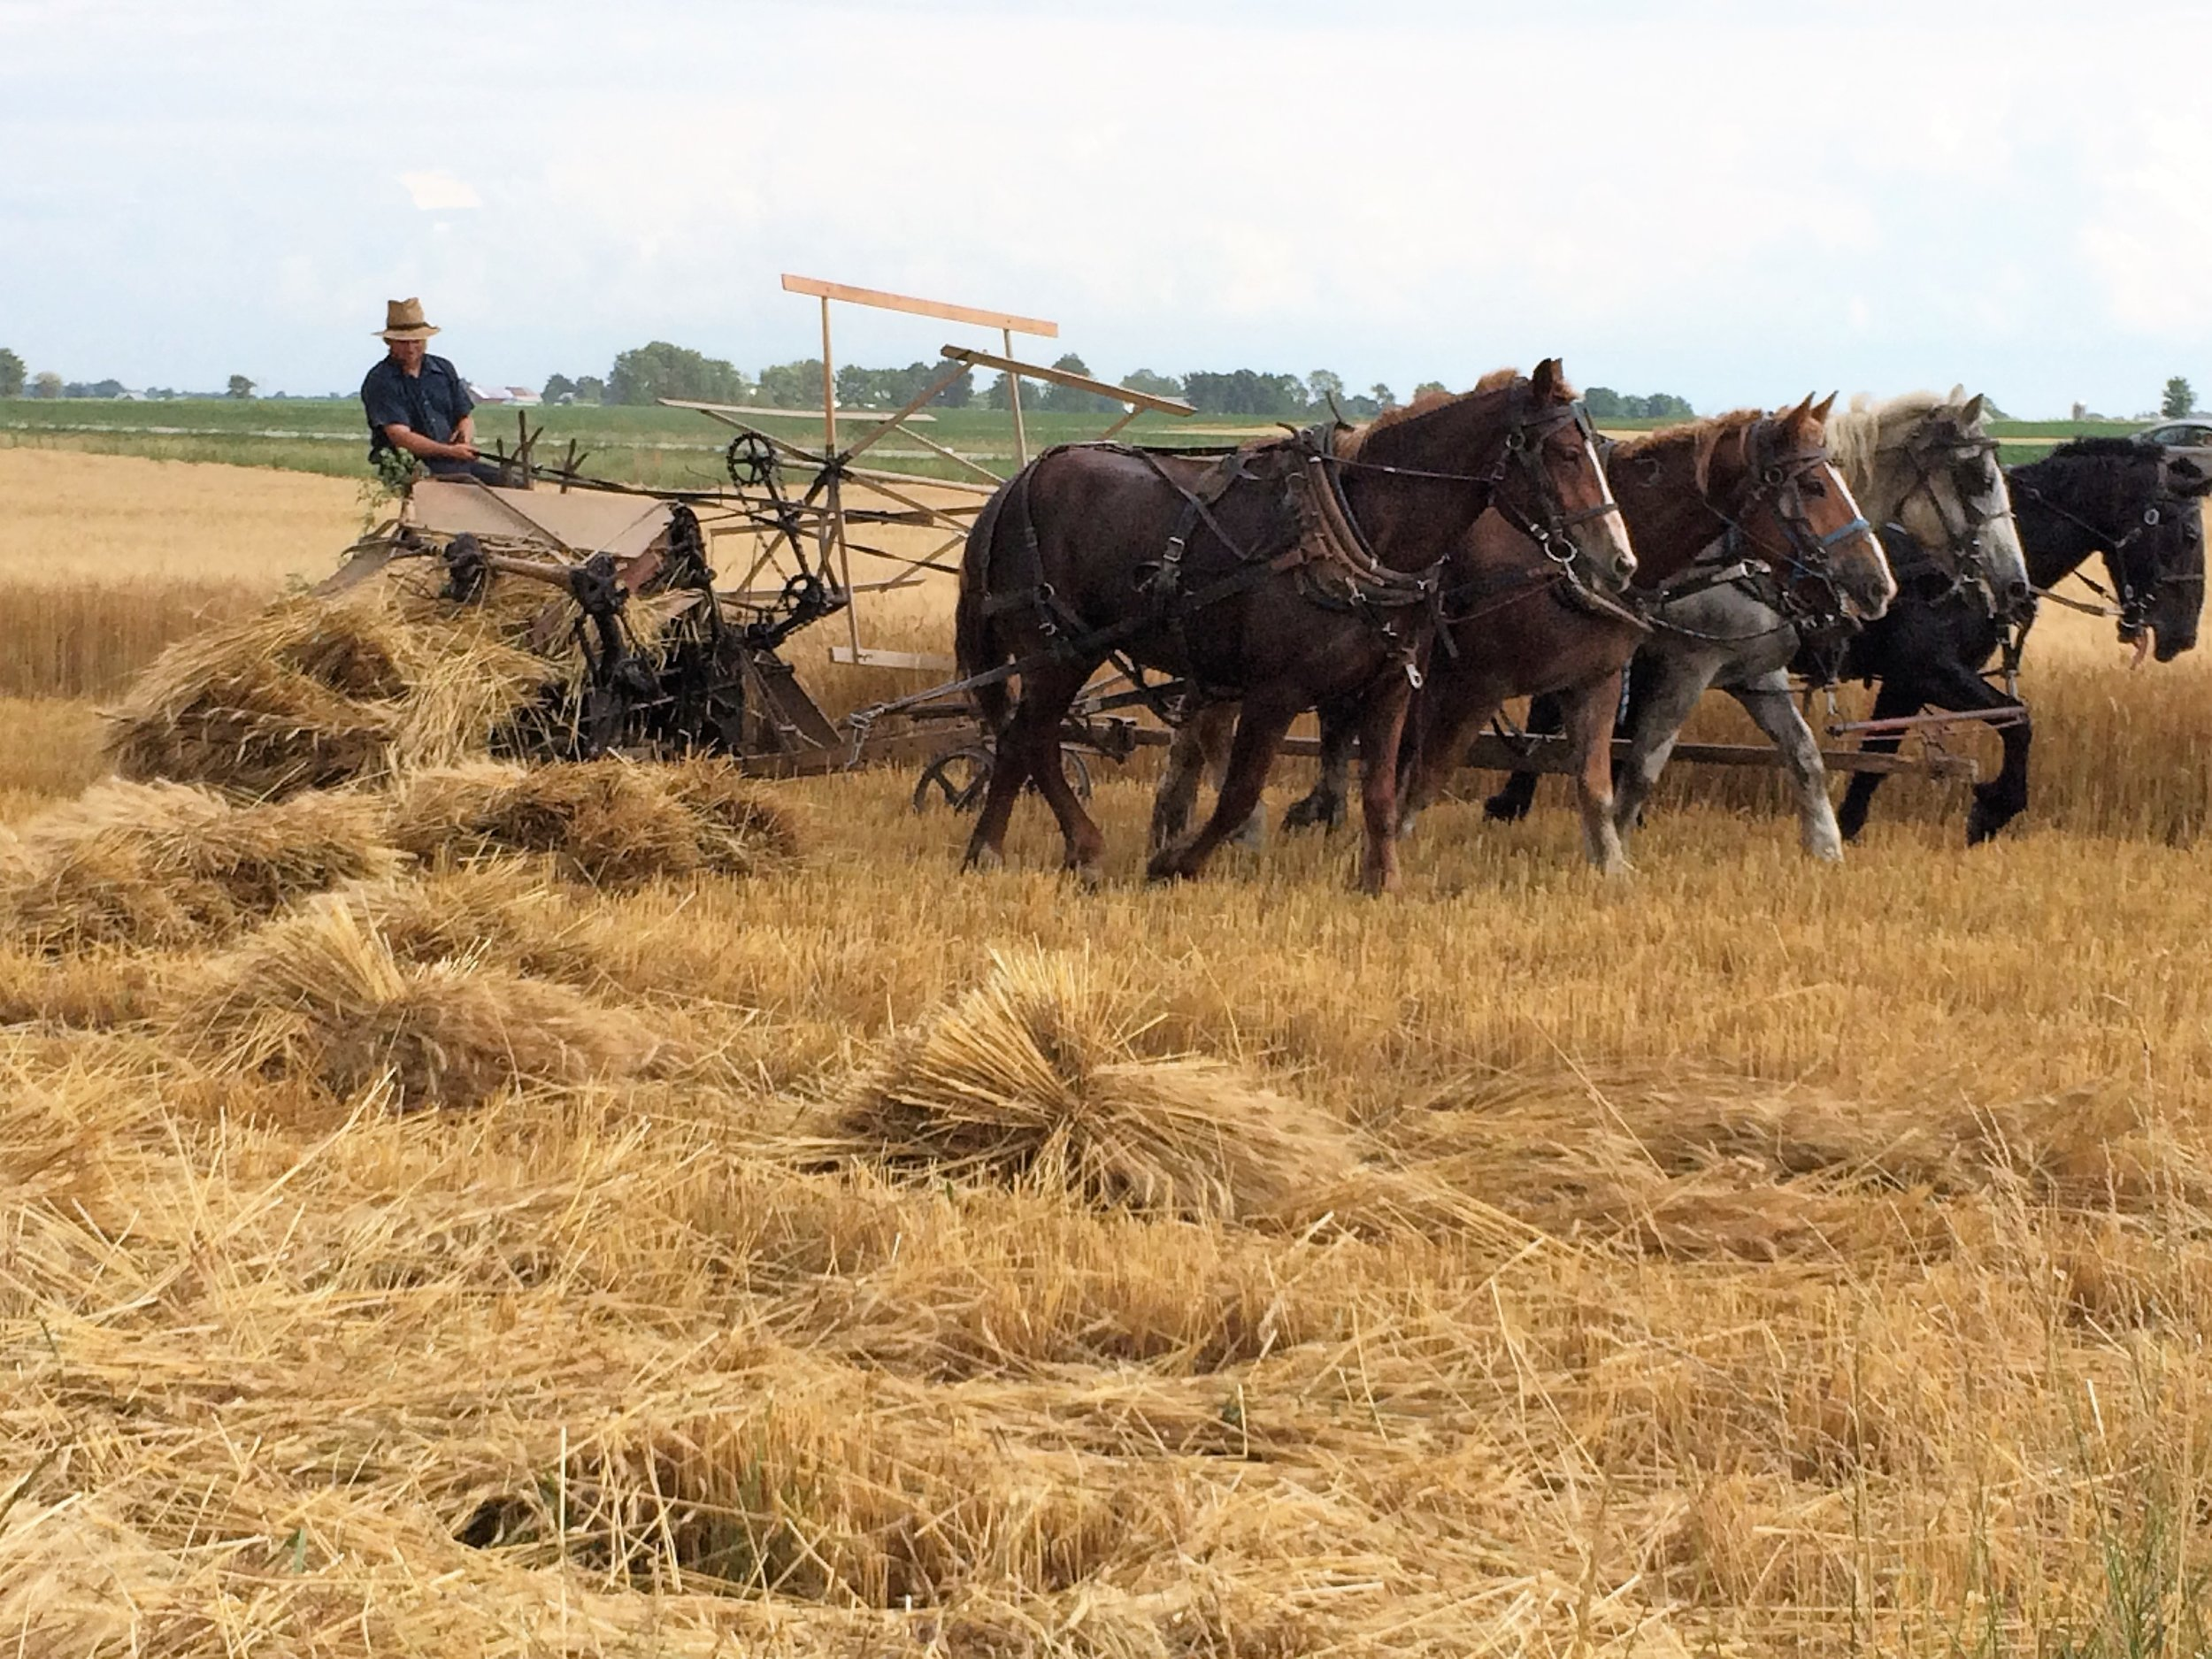 The binder ties the wheat into sheaves.